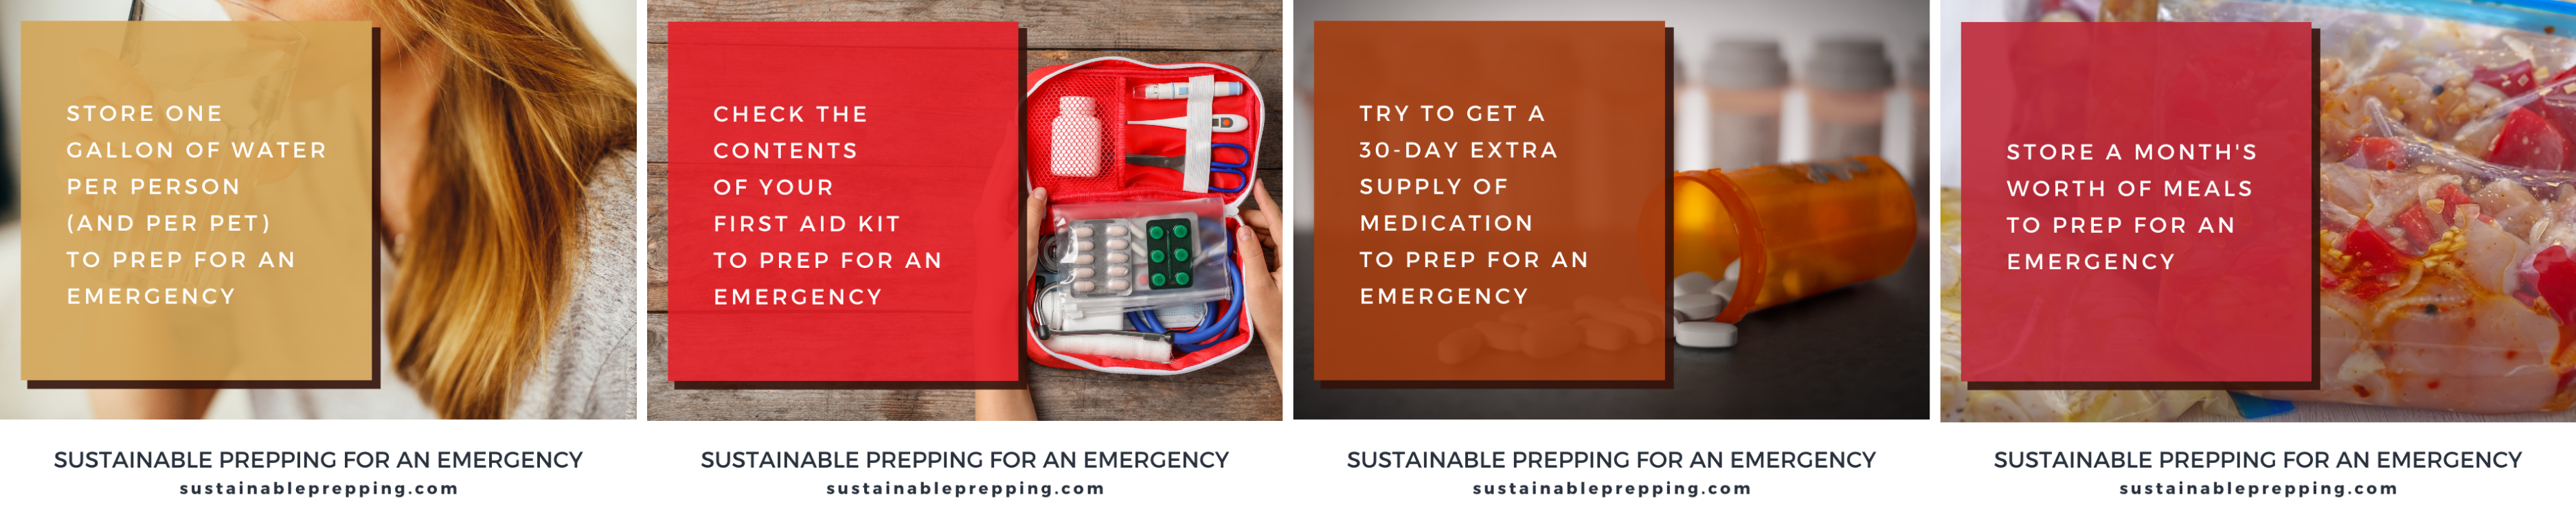 4 examples of social media graphics about prepping for emergencies